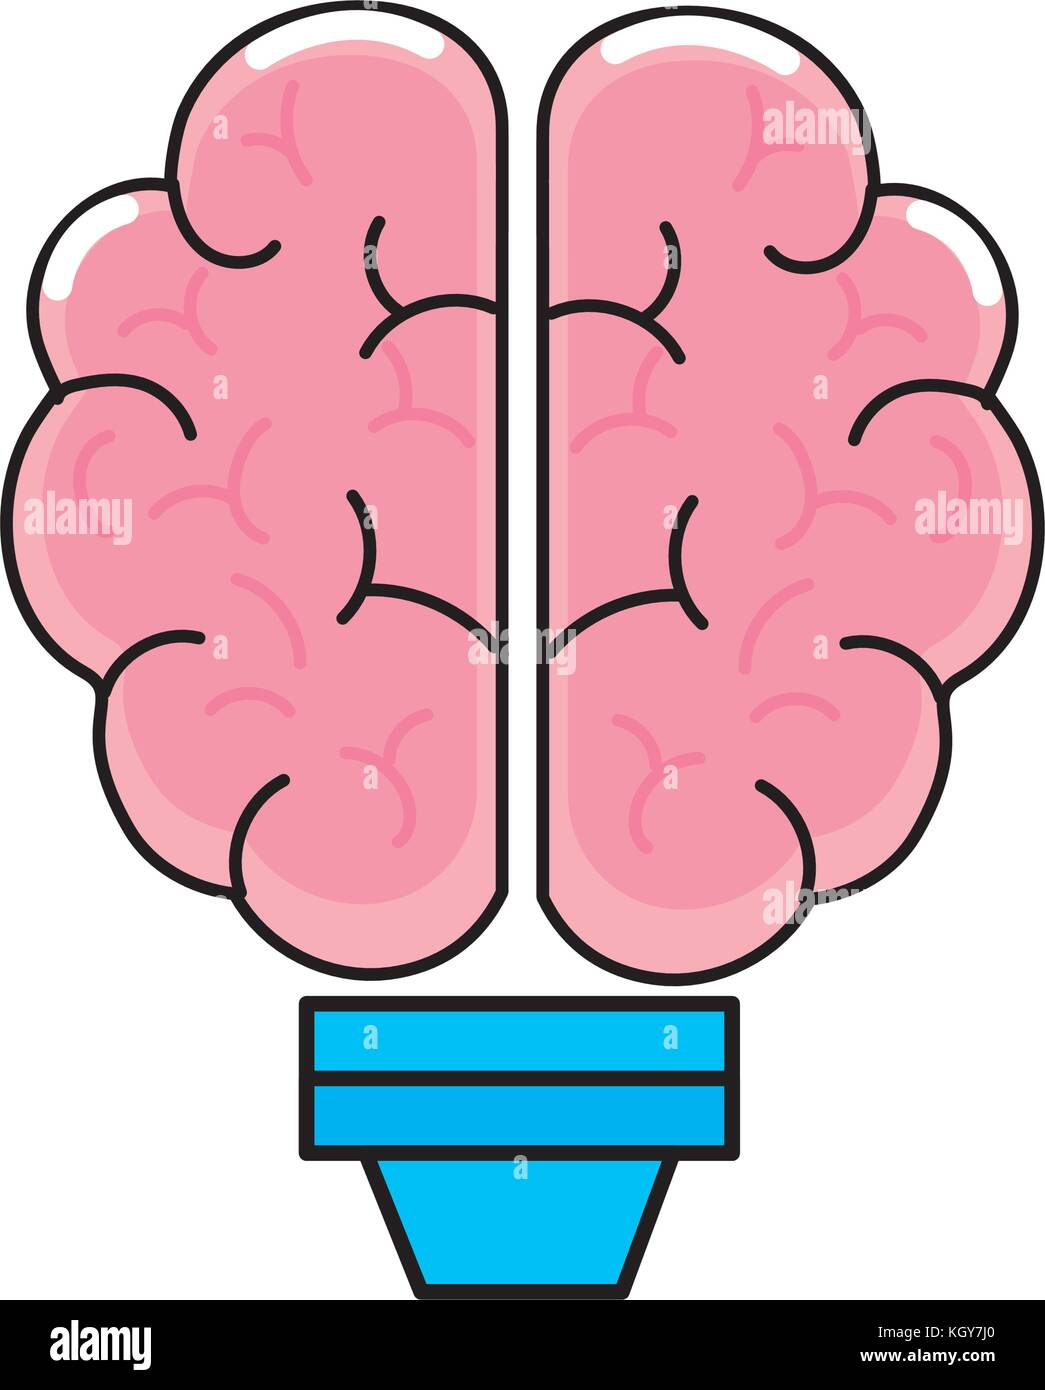 Brain and bulb design - Stock Image